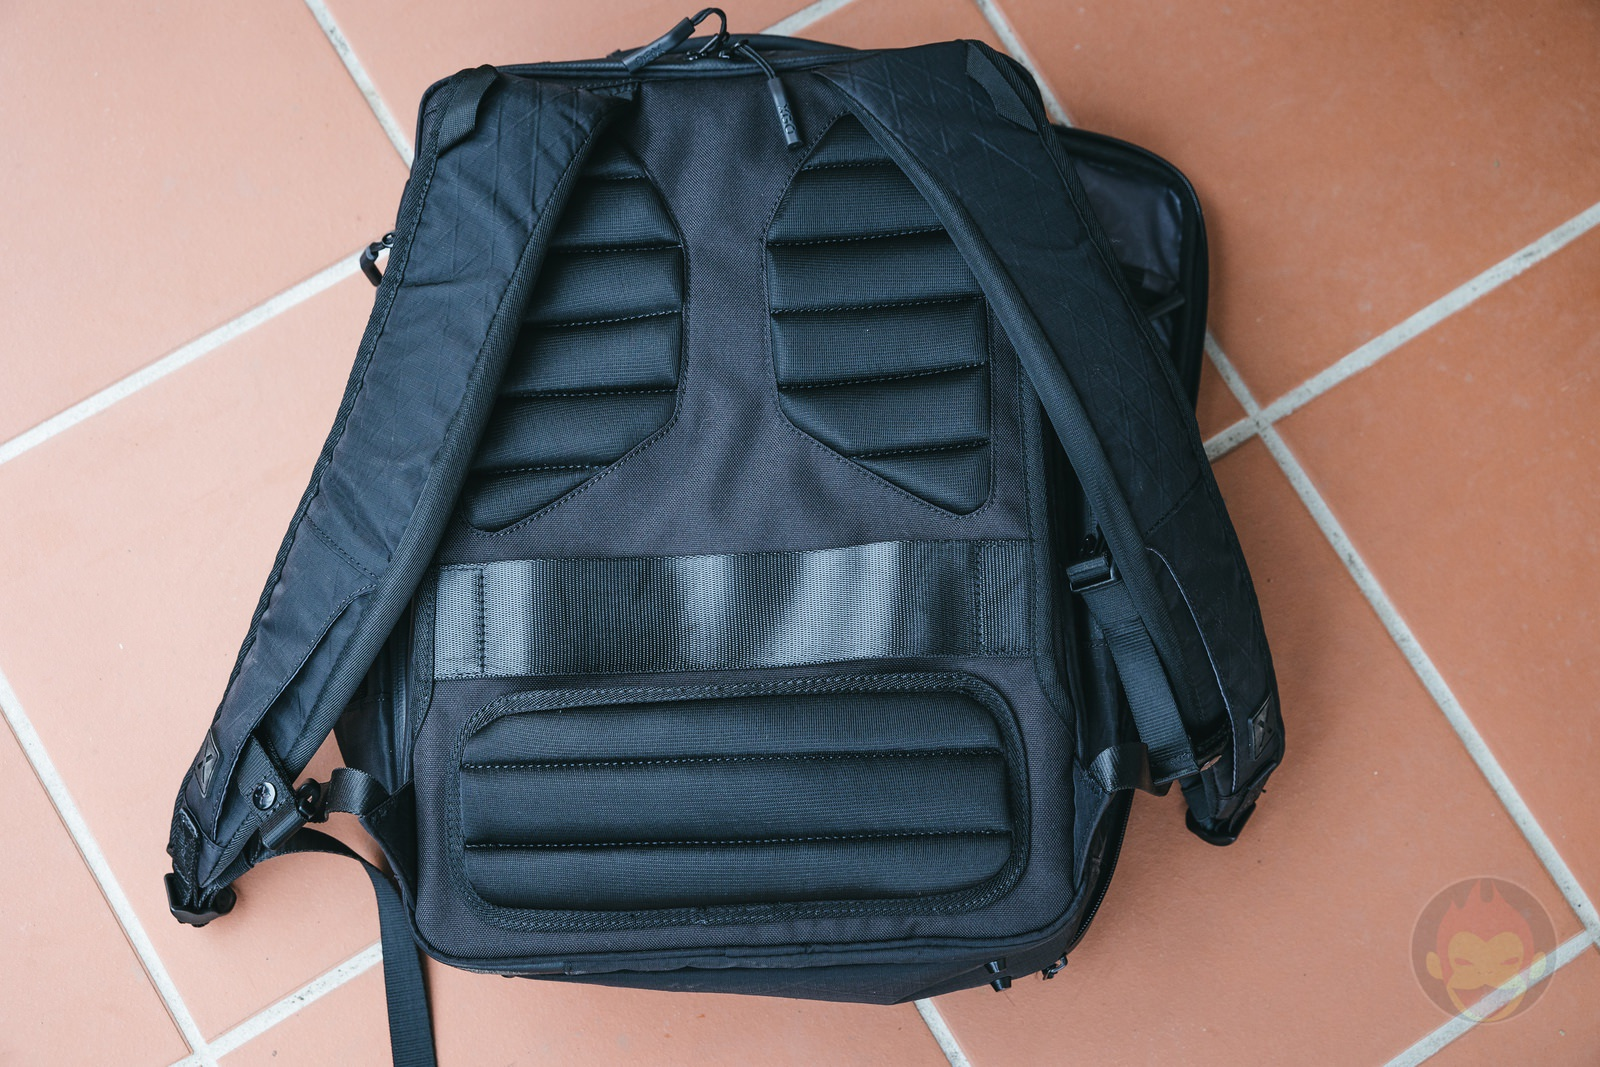 XGO BizBackPack hands on 08